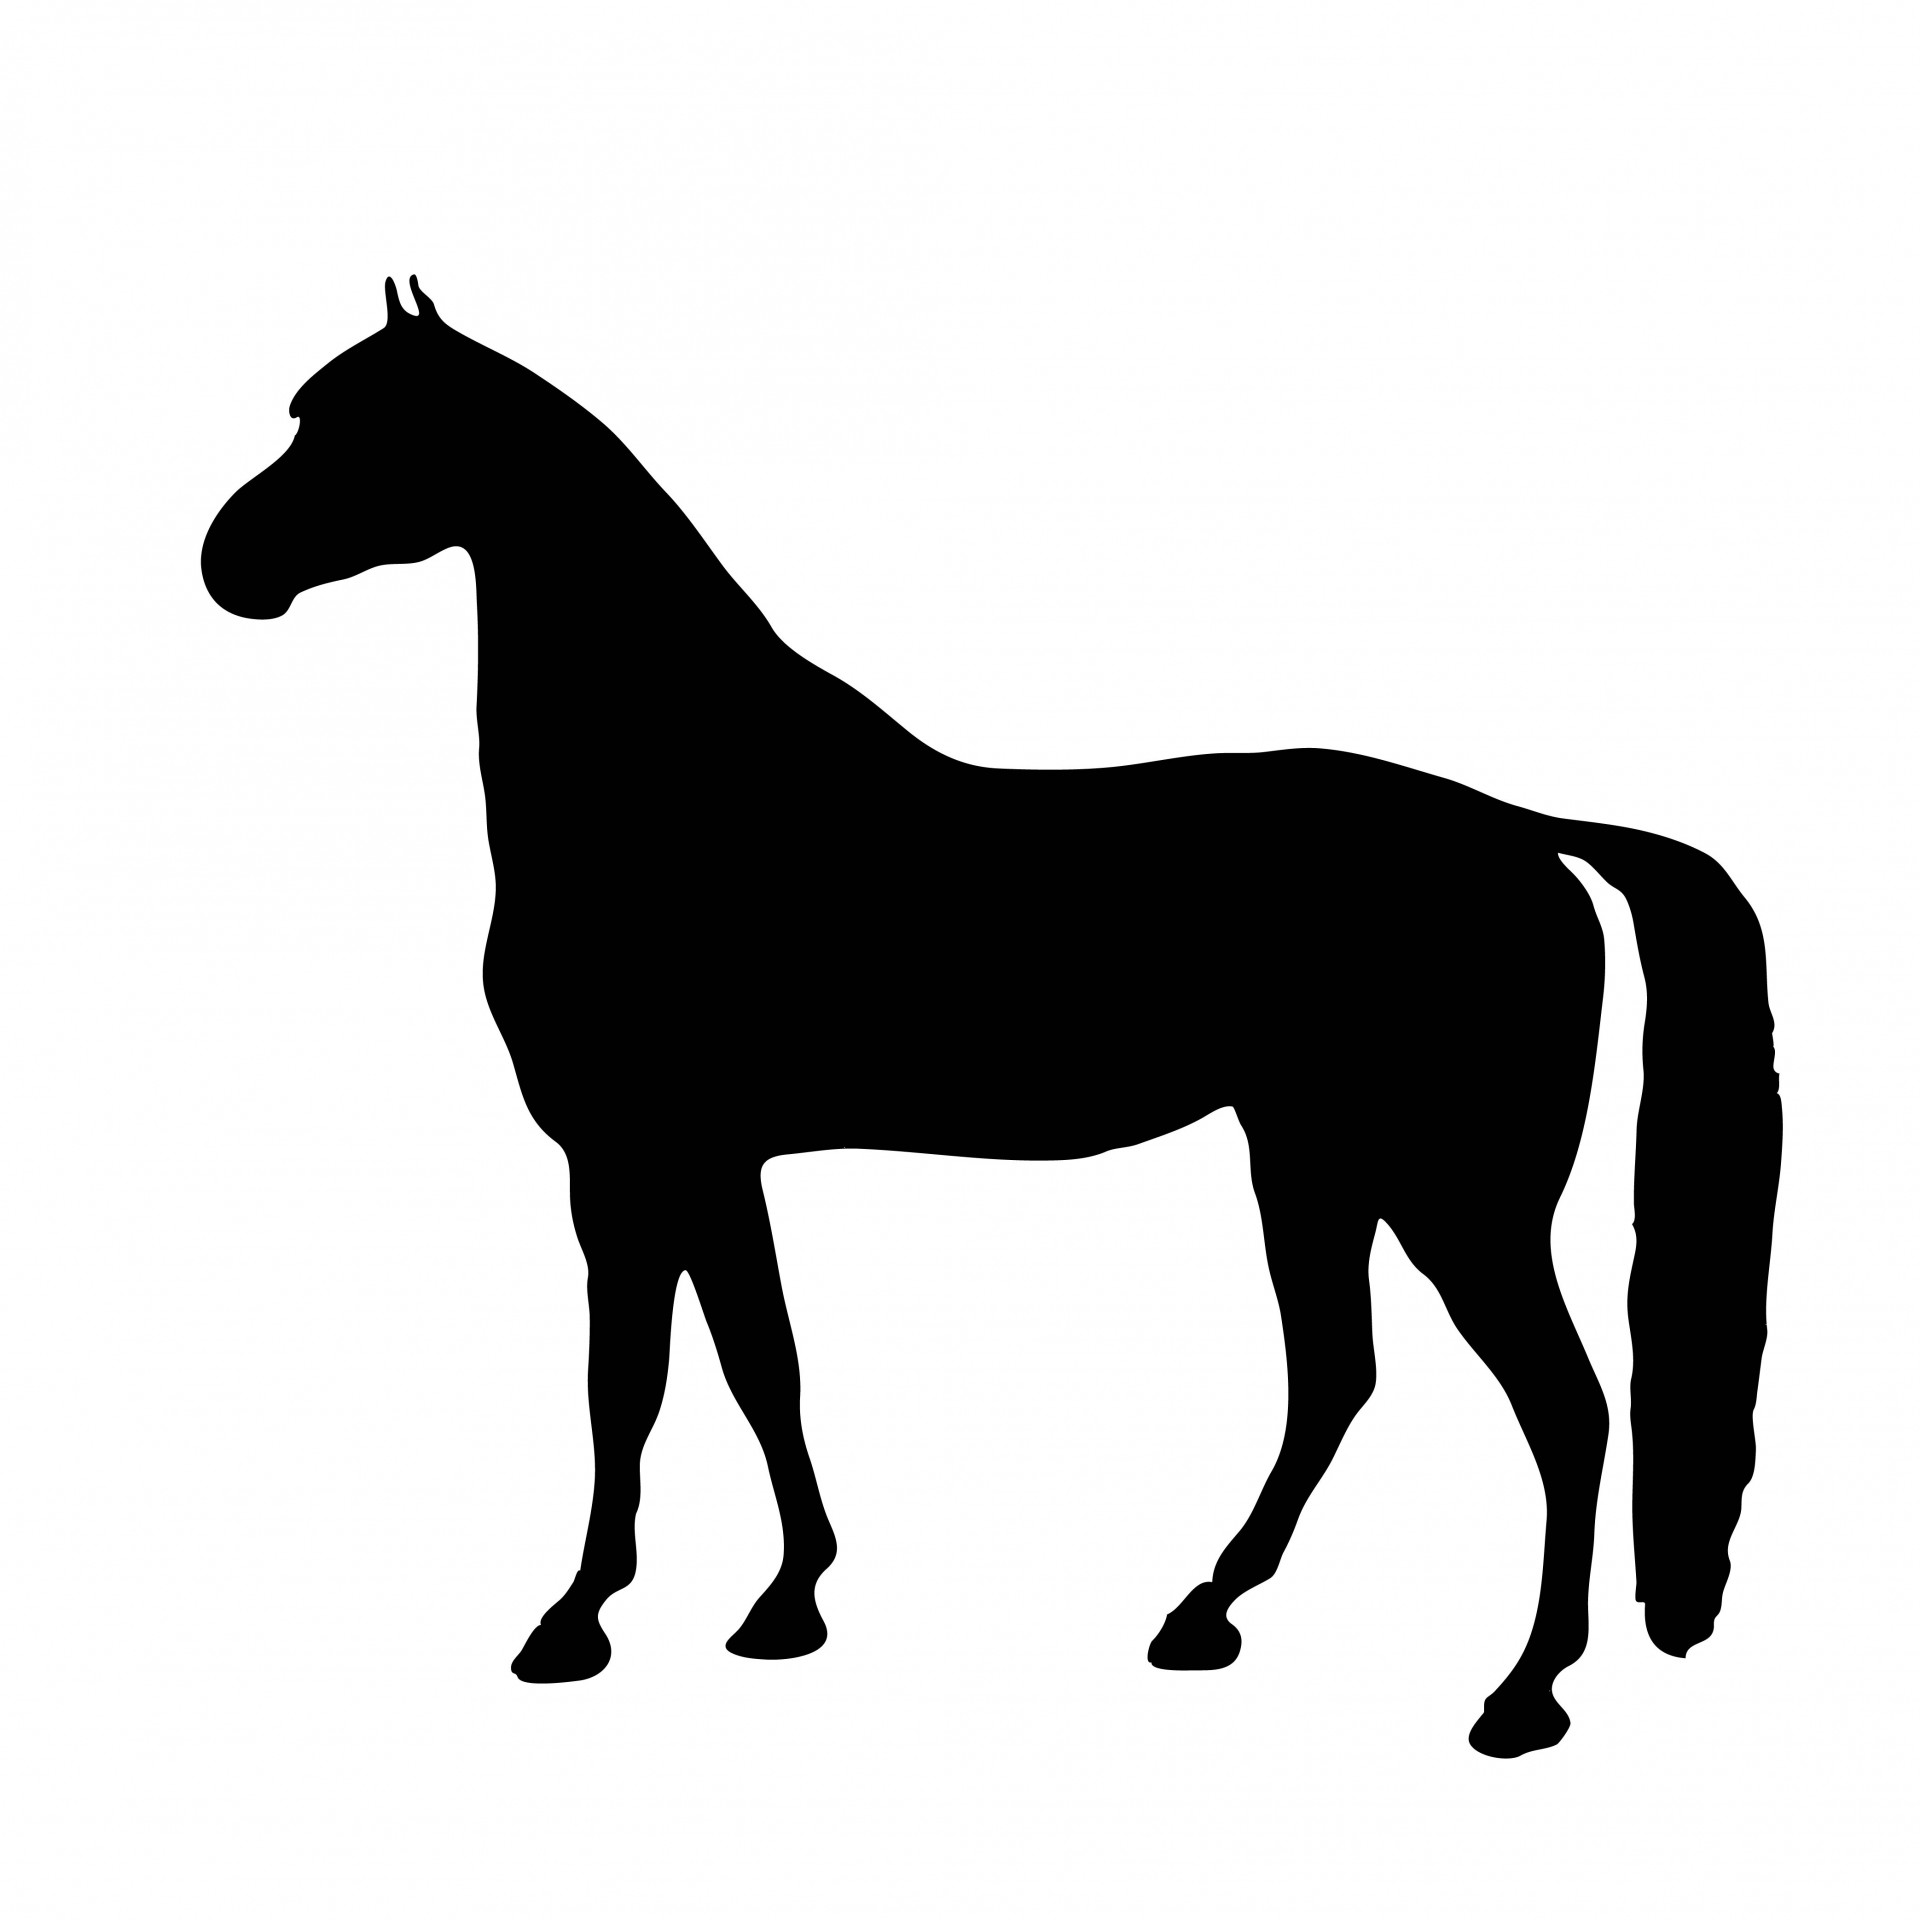 1920x1920 Horse Silhouette Clipart Free Stock Photo